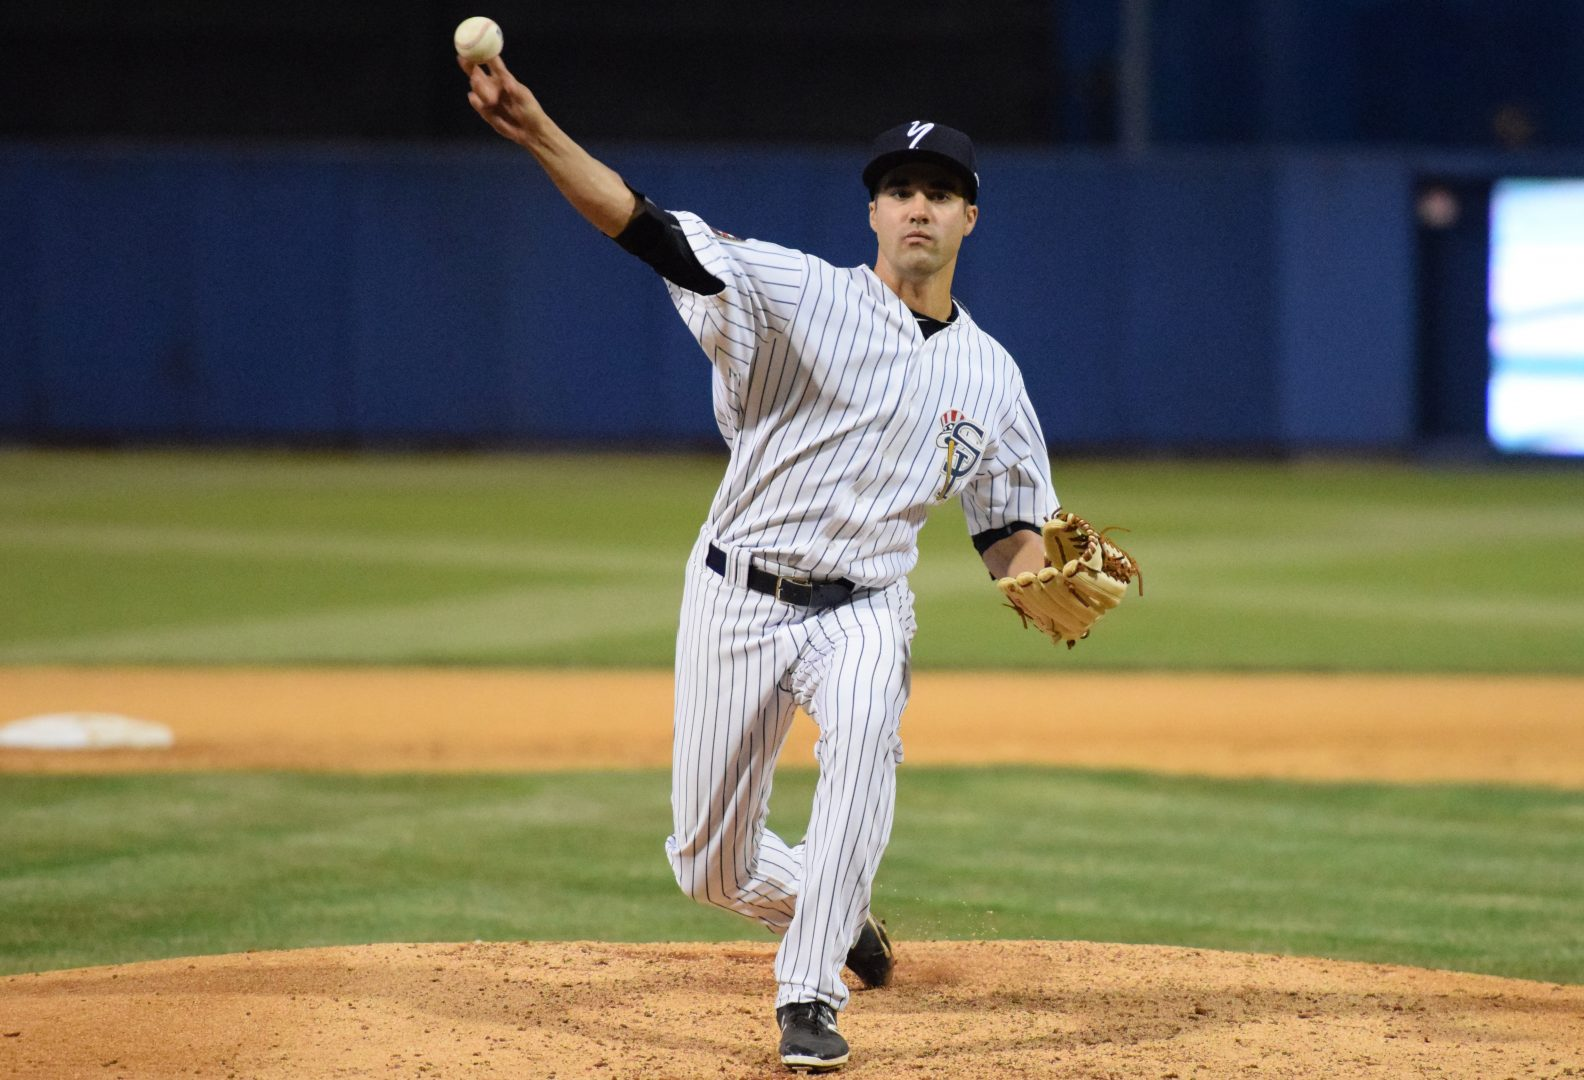 Staten Island Yankees pitcher Josh Roeder fireing a pitch to the plate in the June 18, 2016 game against the Brooklyn Cyclones. (Robert M. Pimpsner/RMP Sports Media, Inc.)